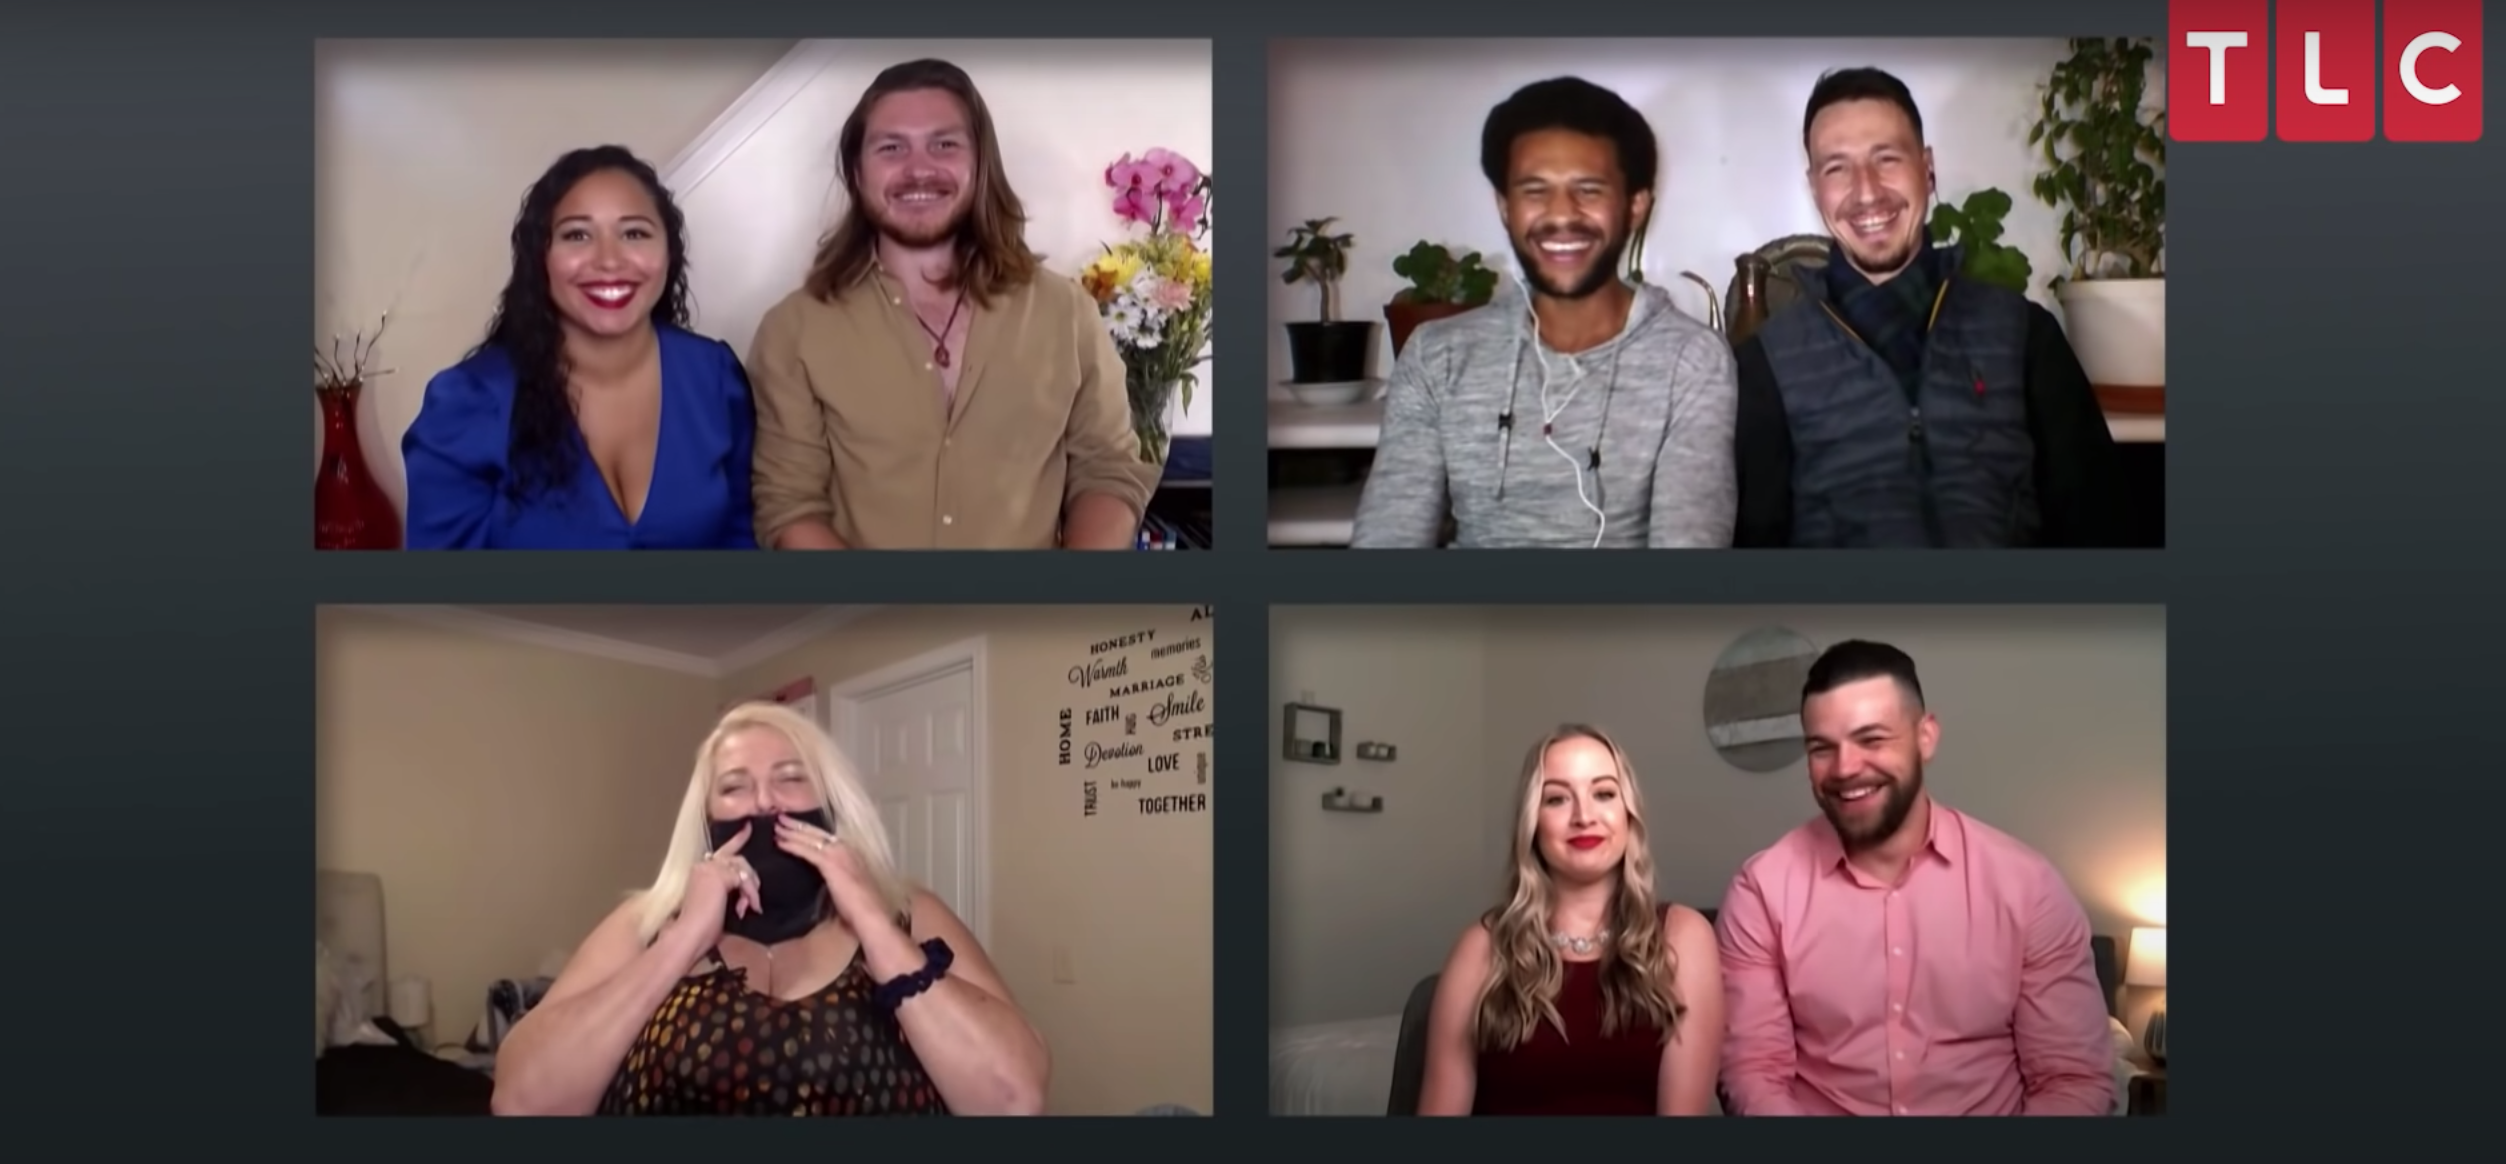 90 Day Fiancé: Happily Ever After? on TLC (2020)